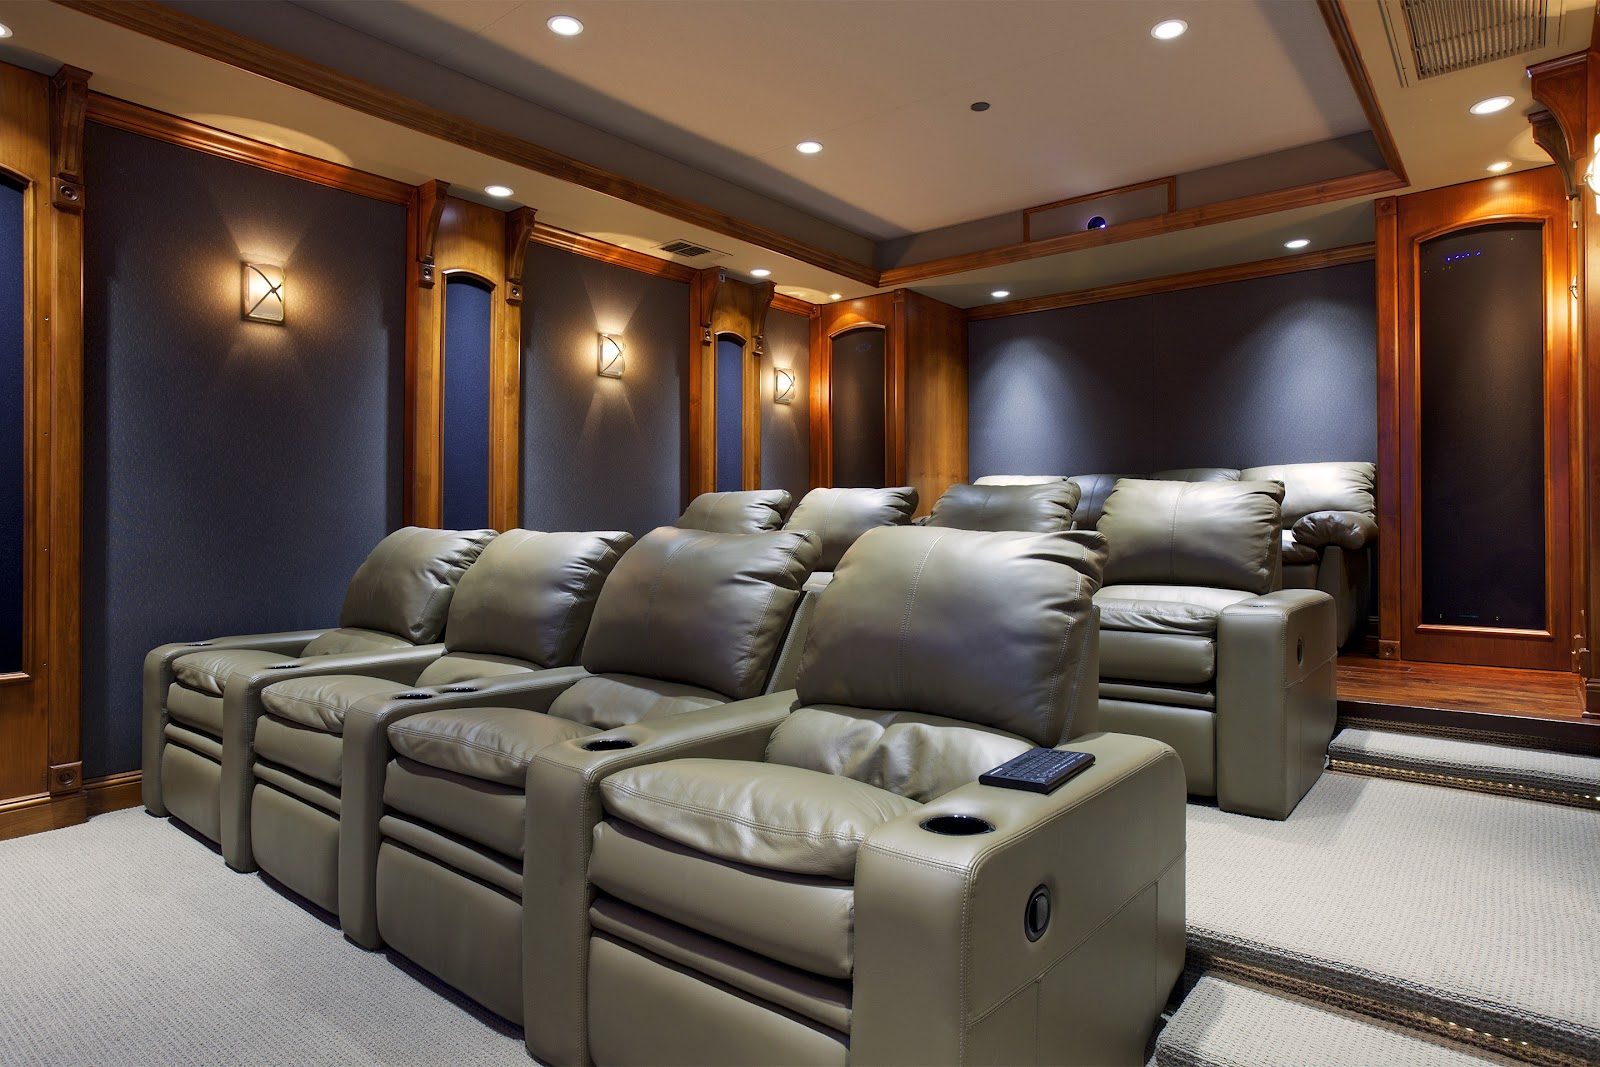 Wall Sconces Home Theater : Wall Sconces Home Theater Homes Decoration Tips